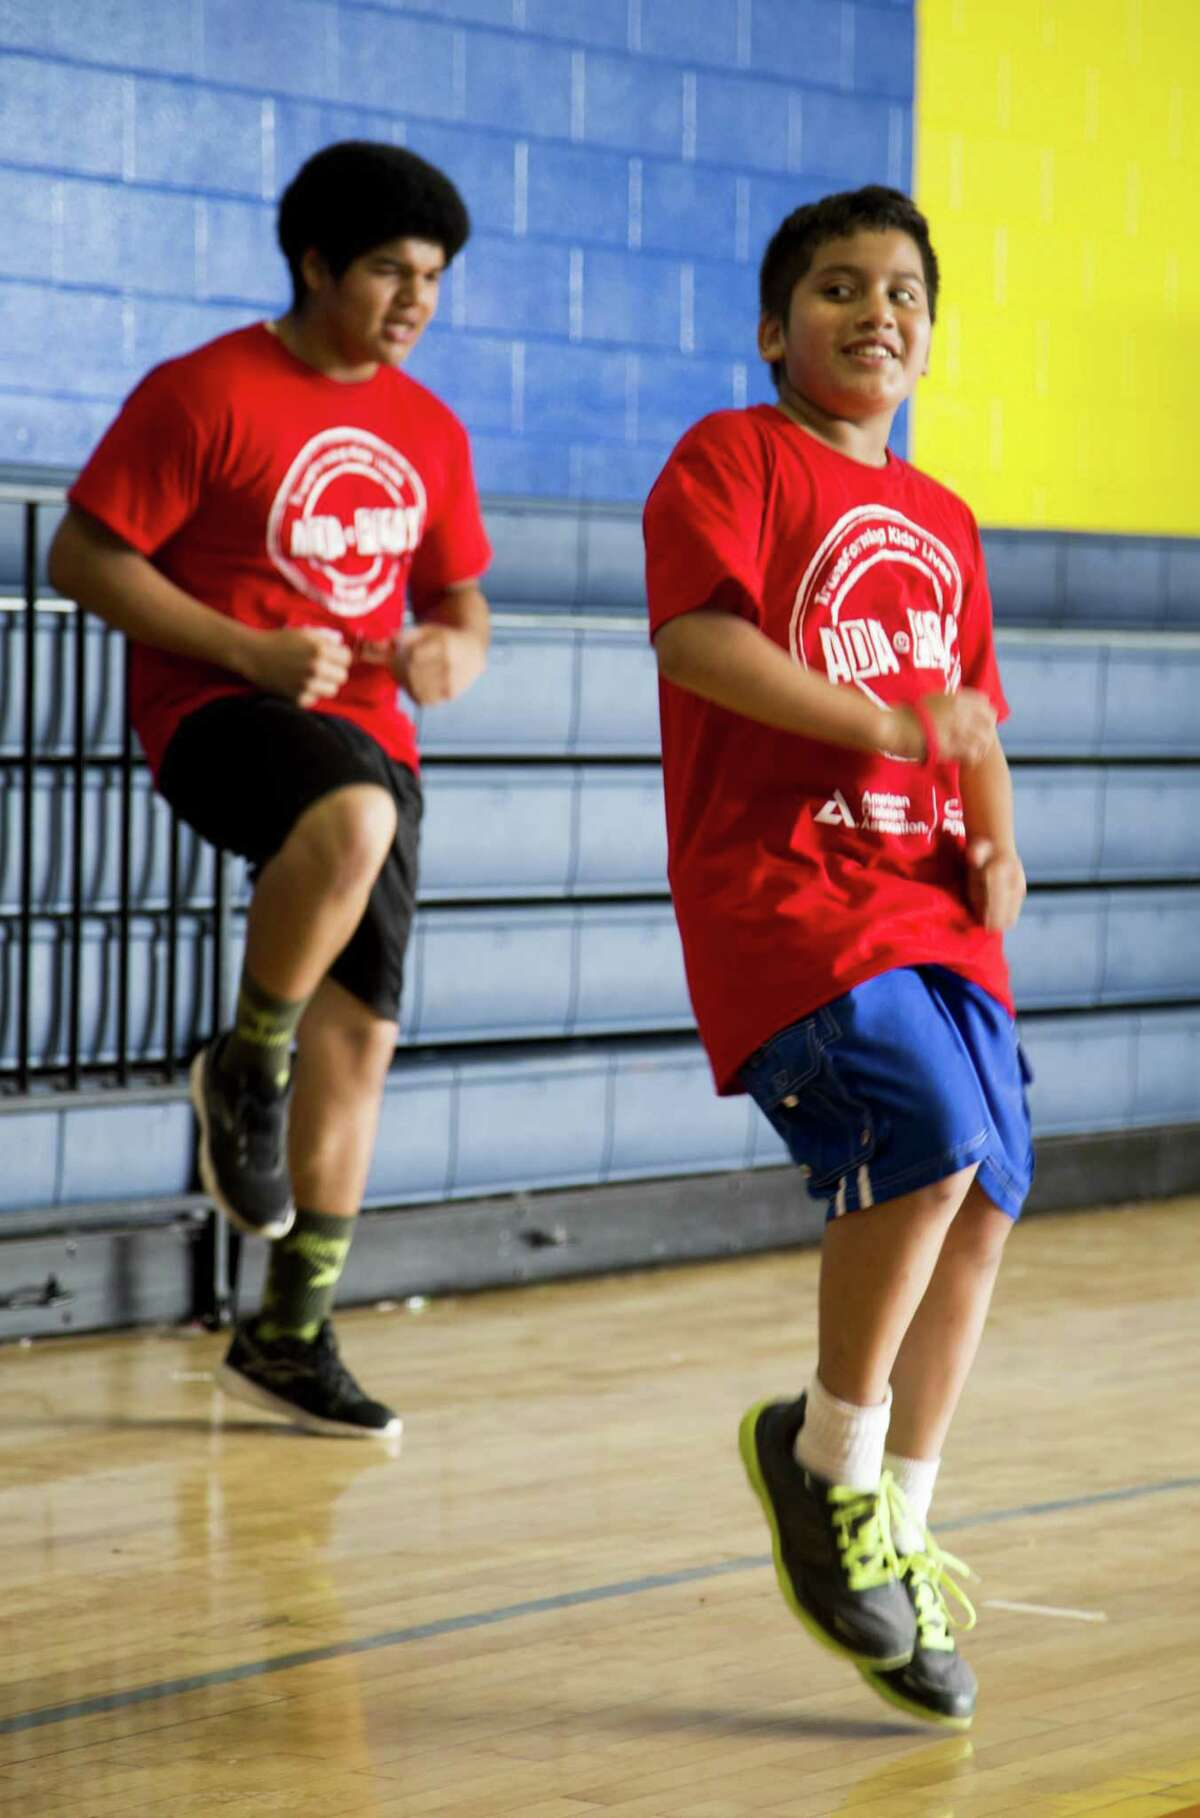 Esteban Gonzalez and David Esquivel participate in physical activities at Camp PowerUp. The American Diabetes Association hosts the camp in San Antonio each summer for children who are at risk of developing Type 2 diabetes.